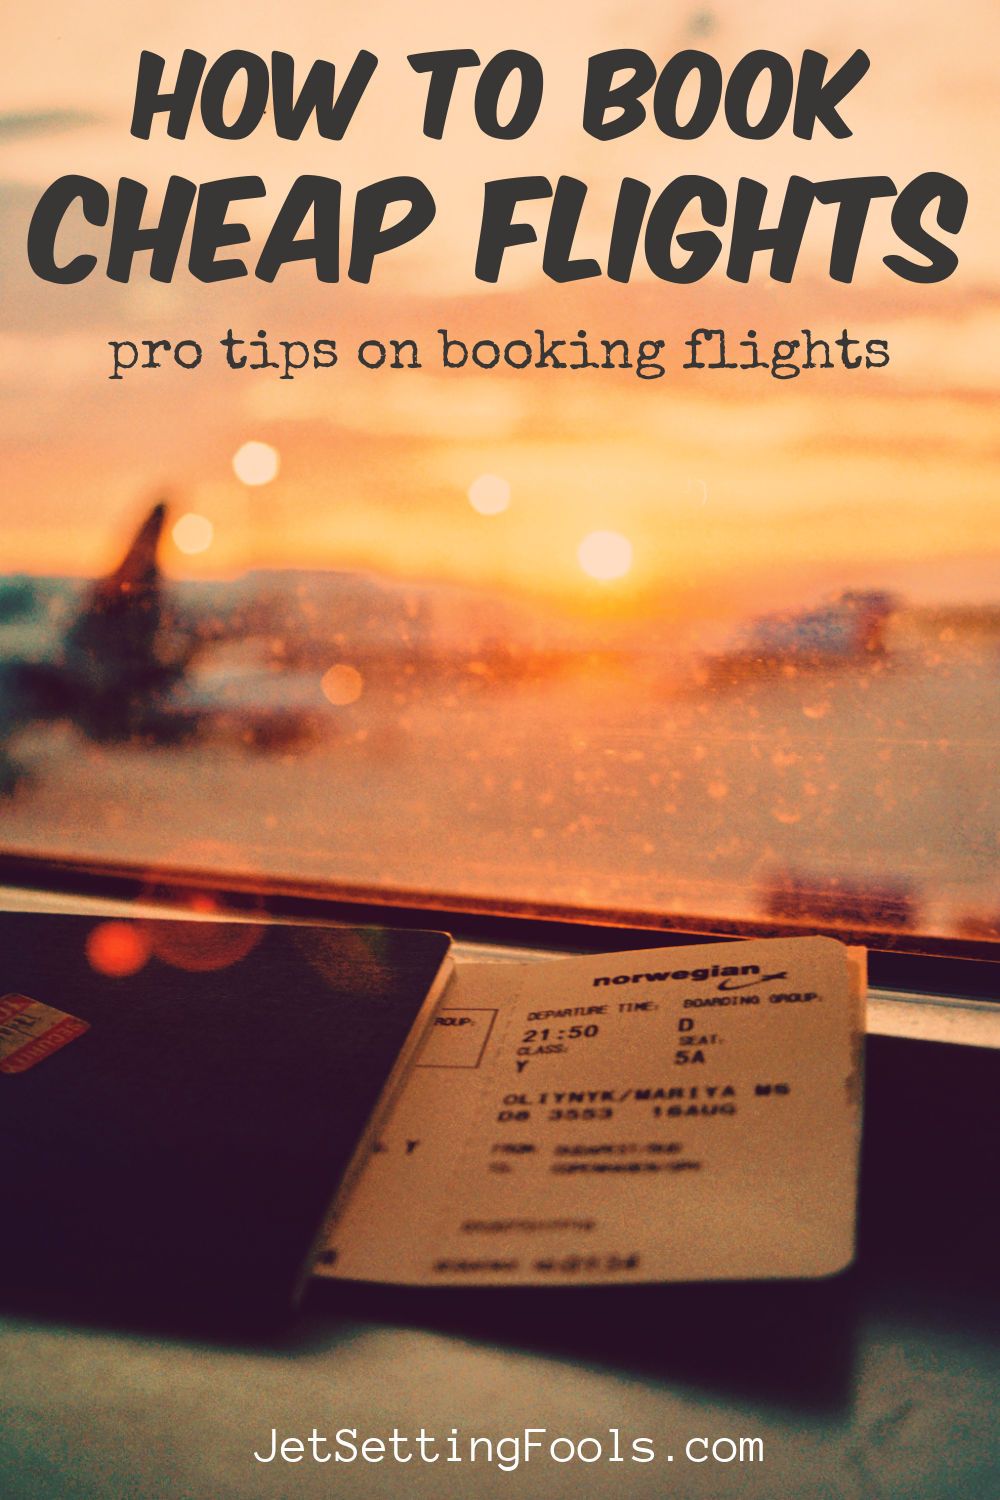 How To Book Cheap Flights by JetSettingFools.com